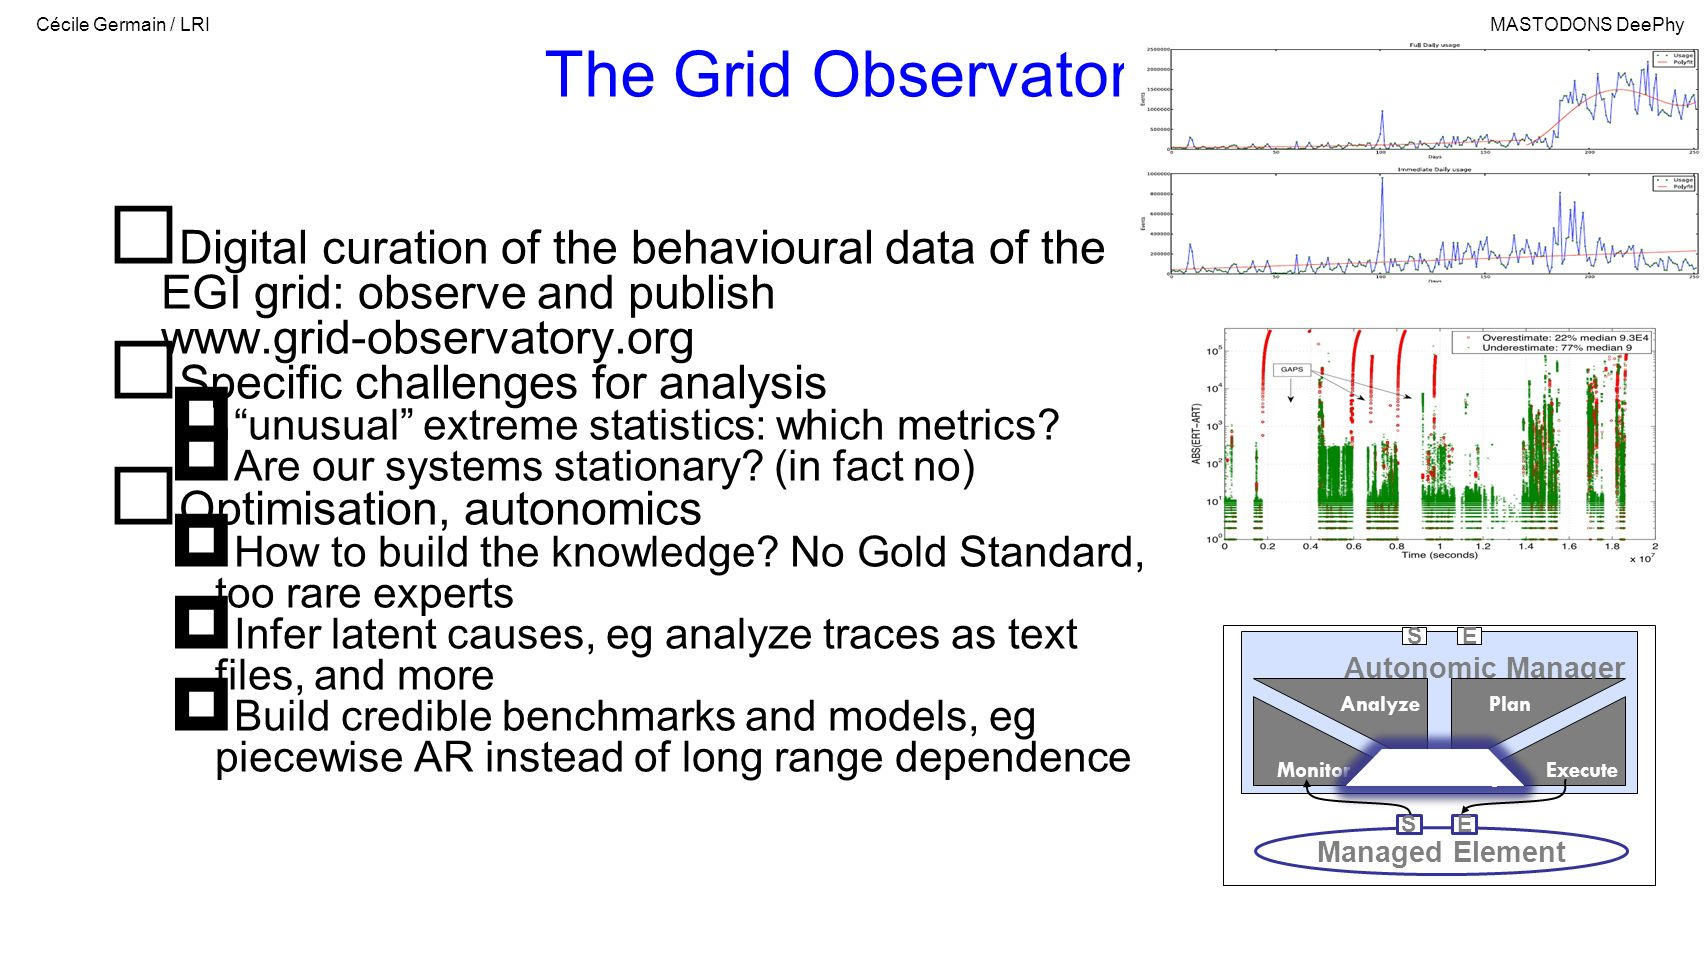 Cécile Germain / LRIMASTODONS DeePhy Digital curation of the behavioural data of the EGI grid: observe and publish www.grid-observatory.org Specific c